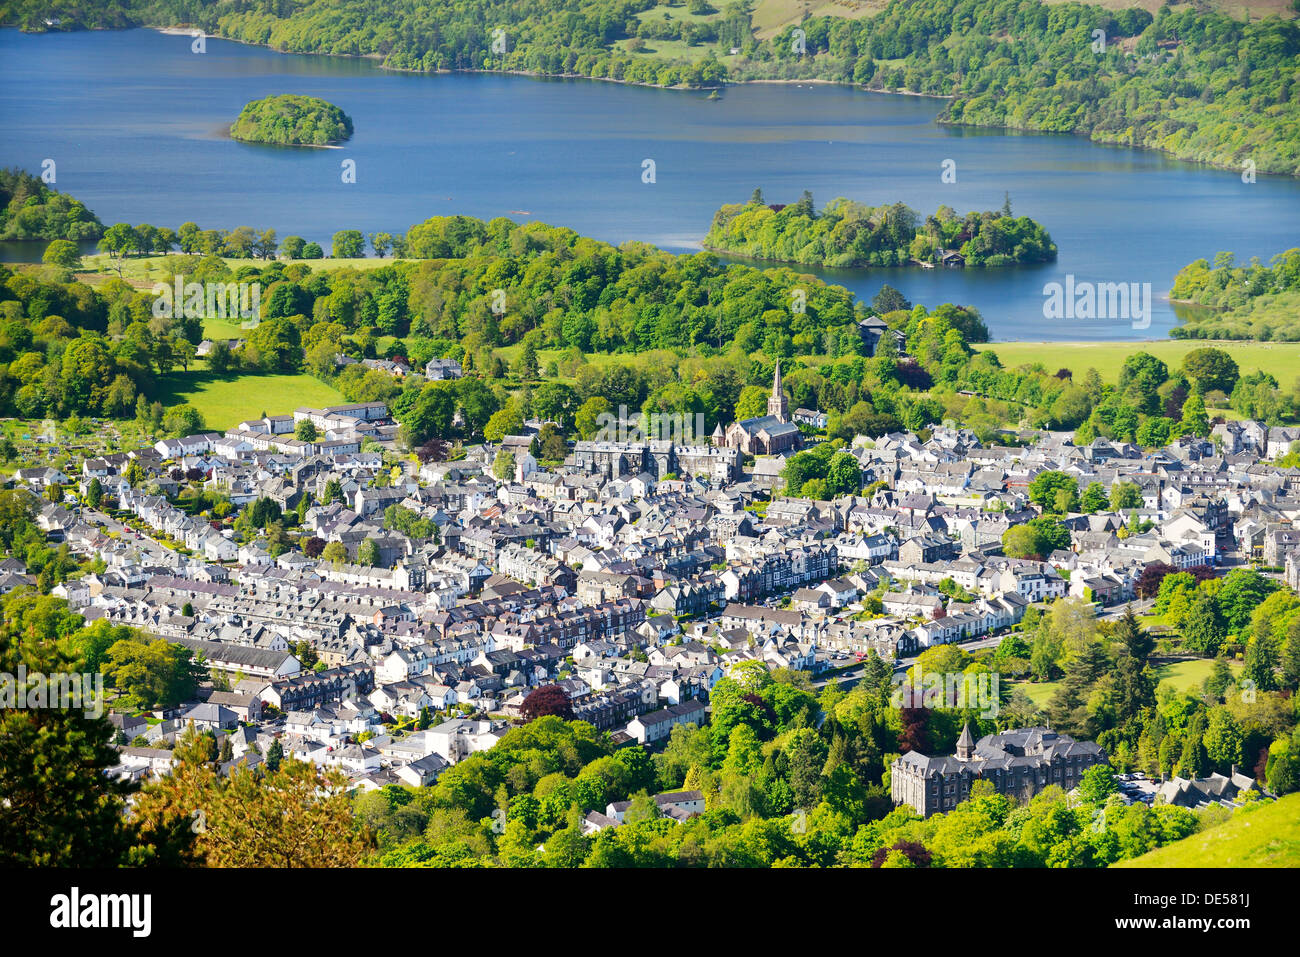 Lake District National Park, Cumbria, England. Southwest over Keswick town and north end of Derwentwater. Summer - Stock Image